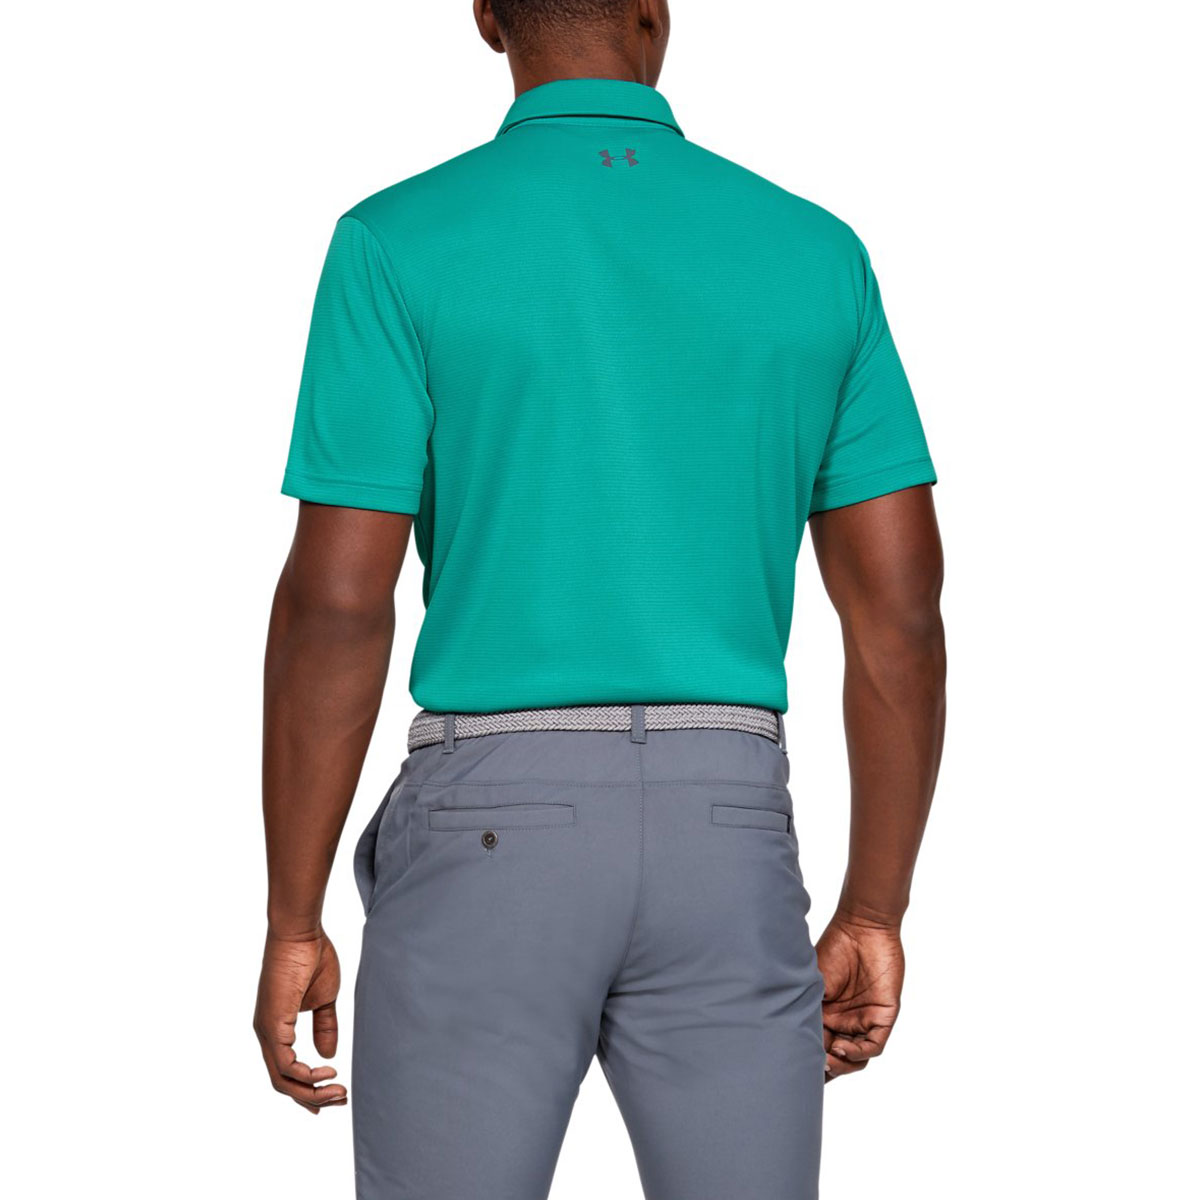 Under-Armour-Mens-Golf-Tech-Wicking-Textured-Soft-Light-Polo-Shirt thumbnail 71